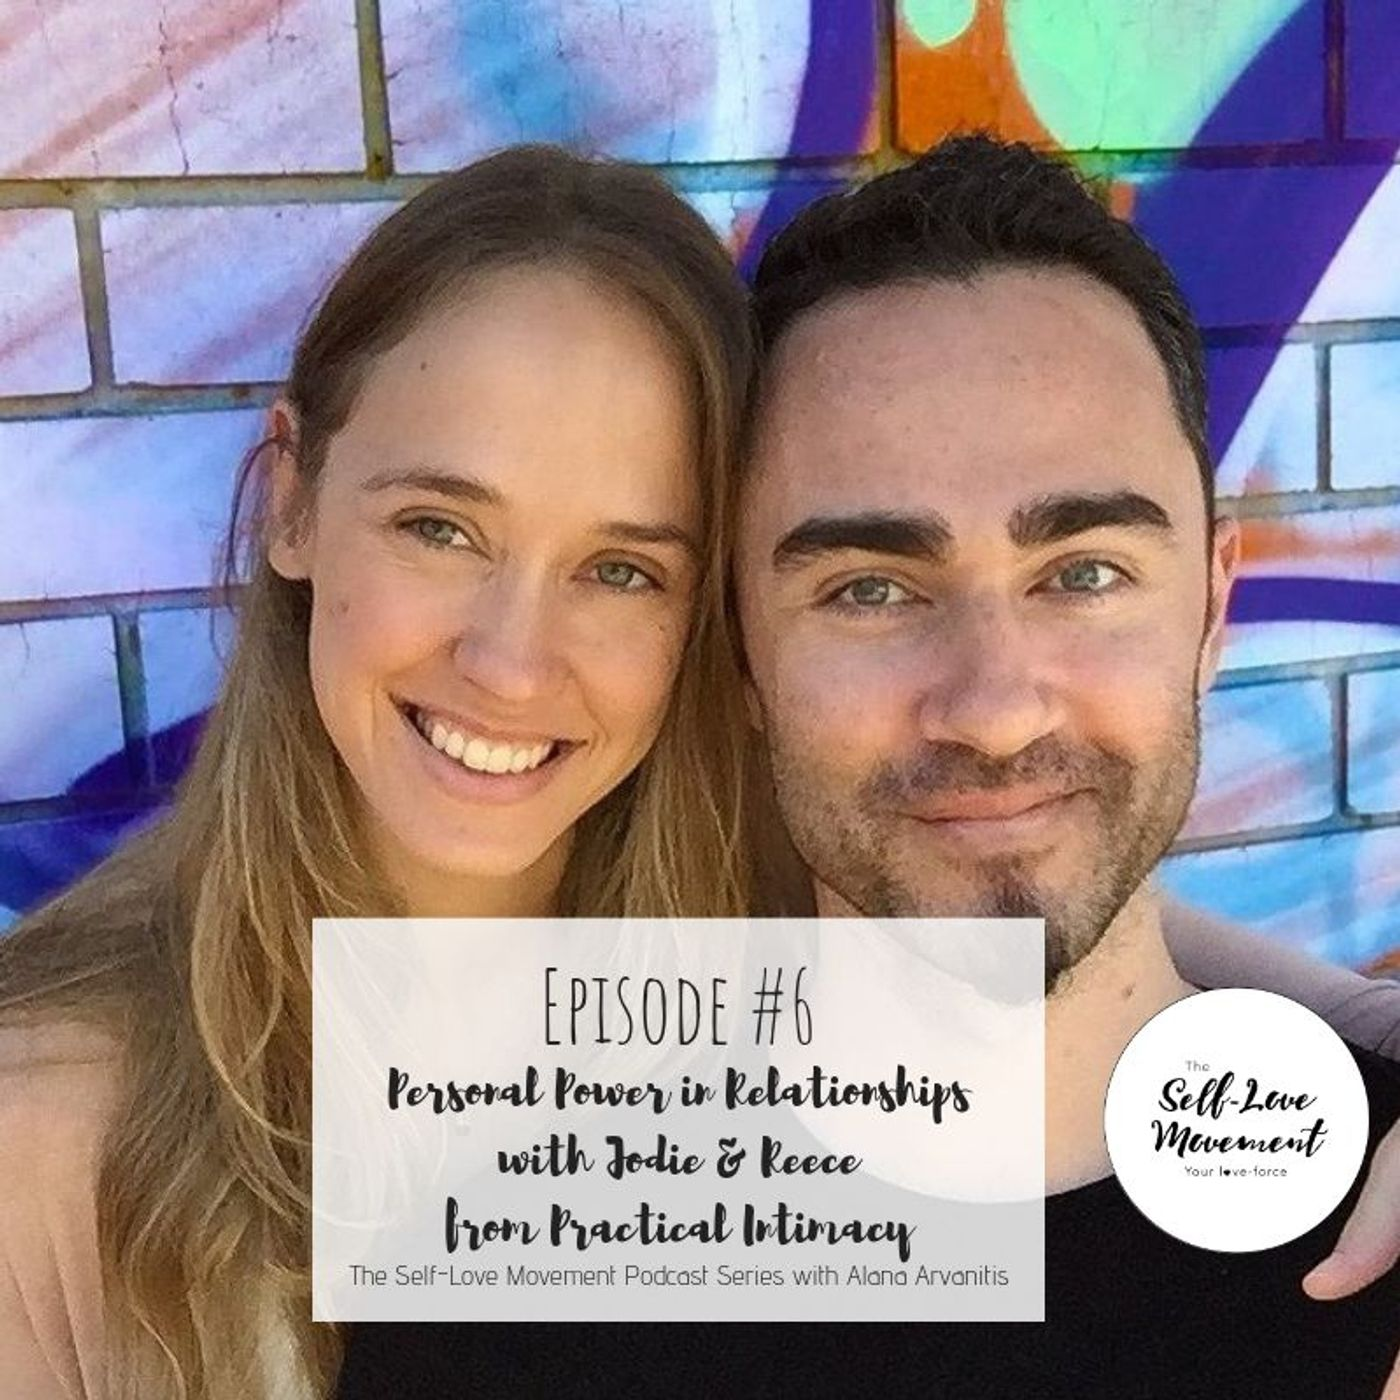 Episode #6 Personal Power In Relationships Jodie & Reece From Practical Intimacy